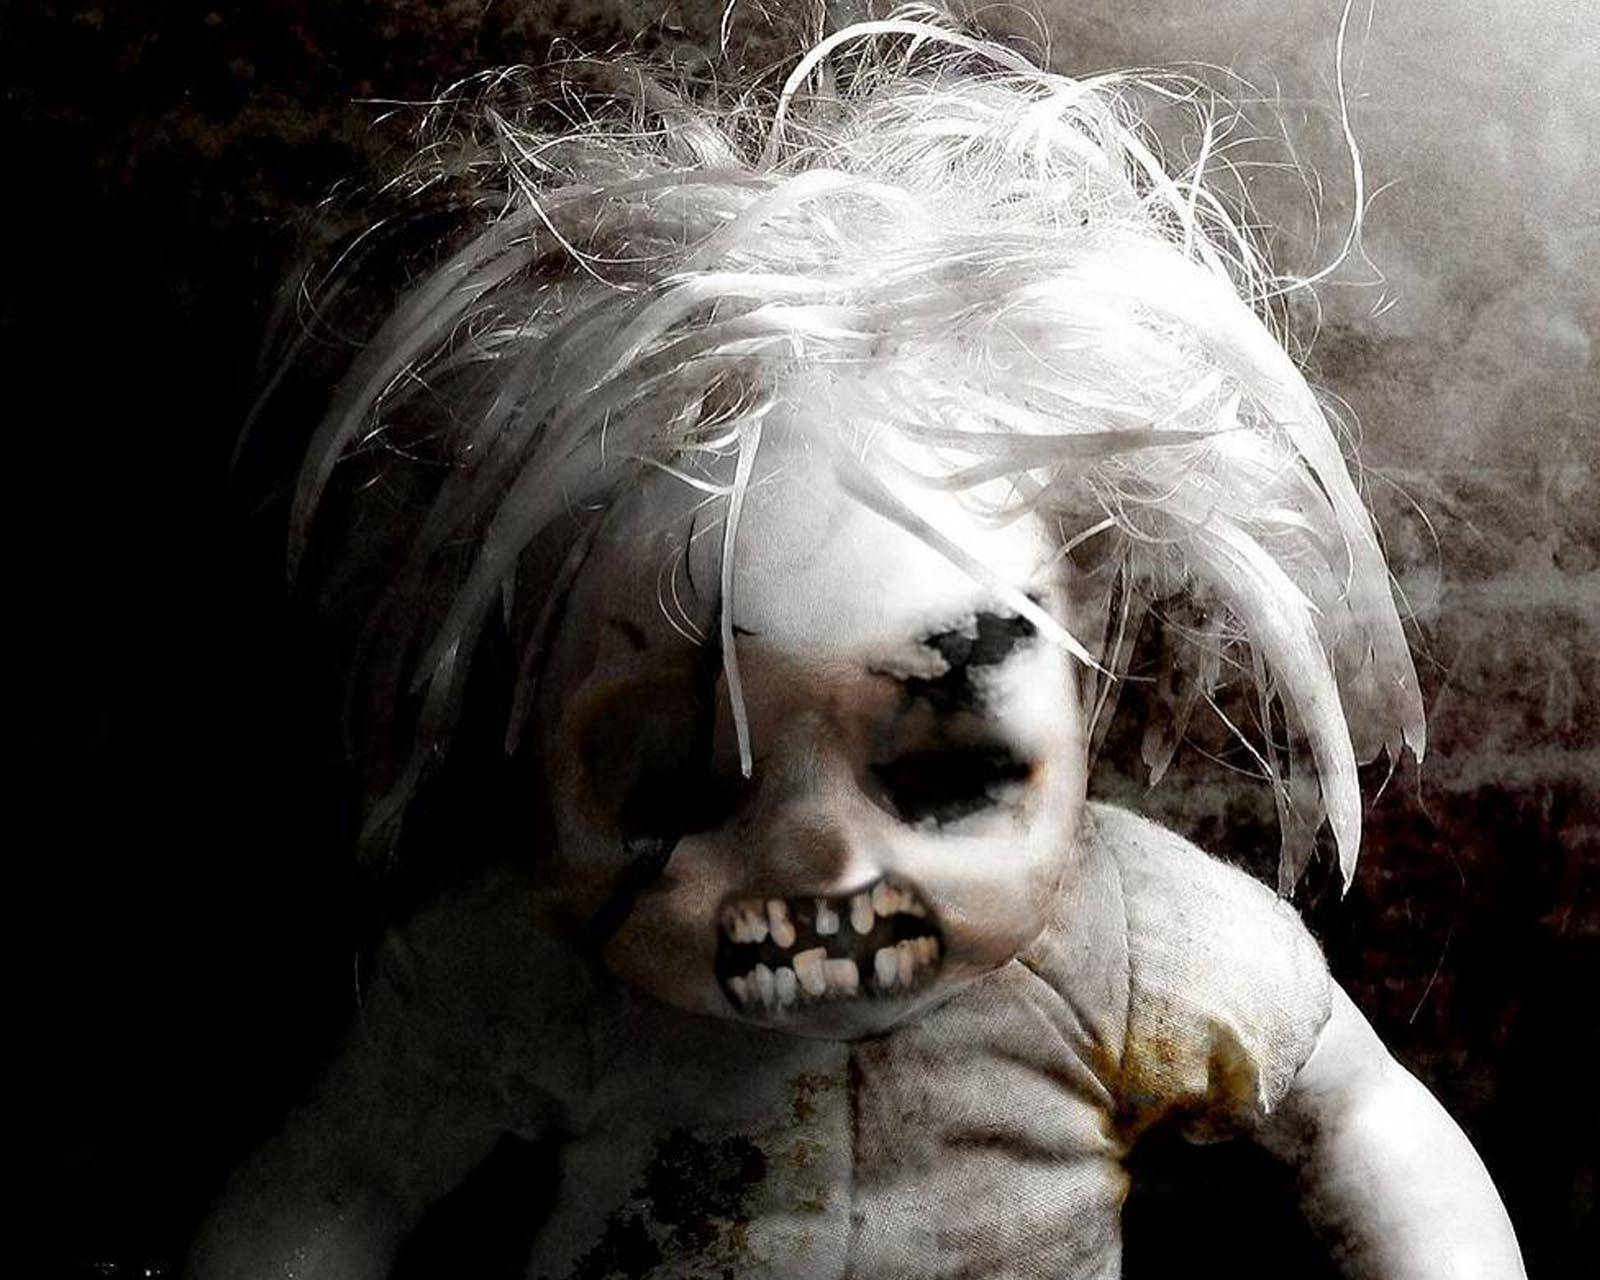 Scary Doll Wallpaper by gpunit - af